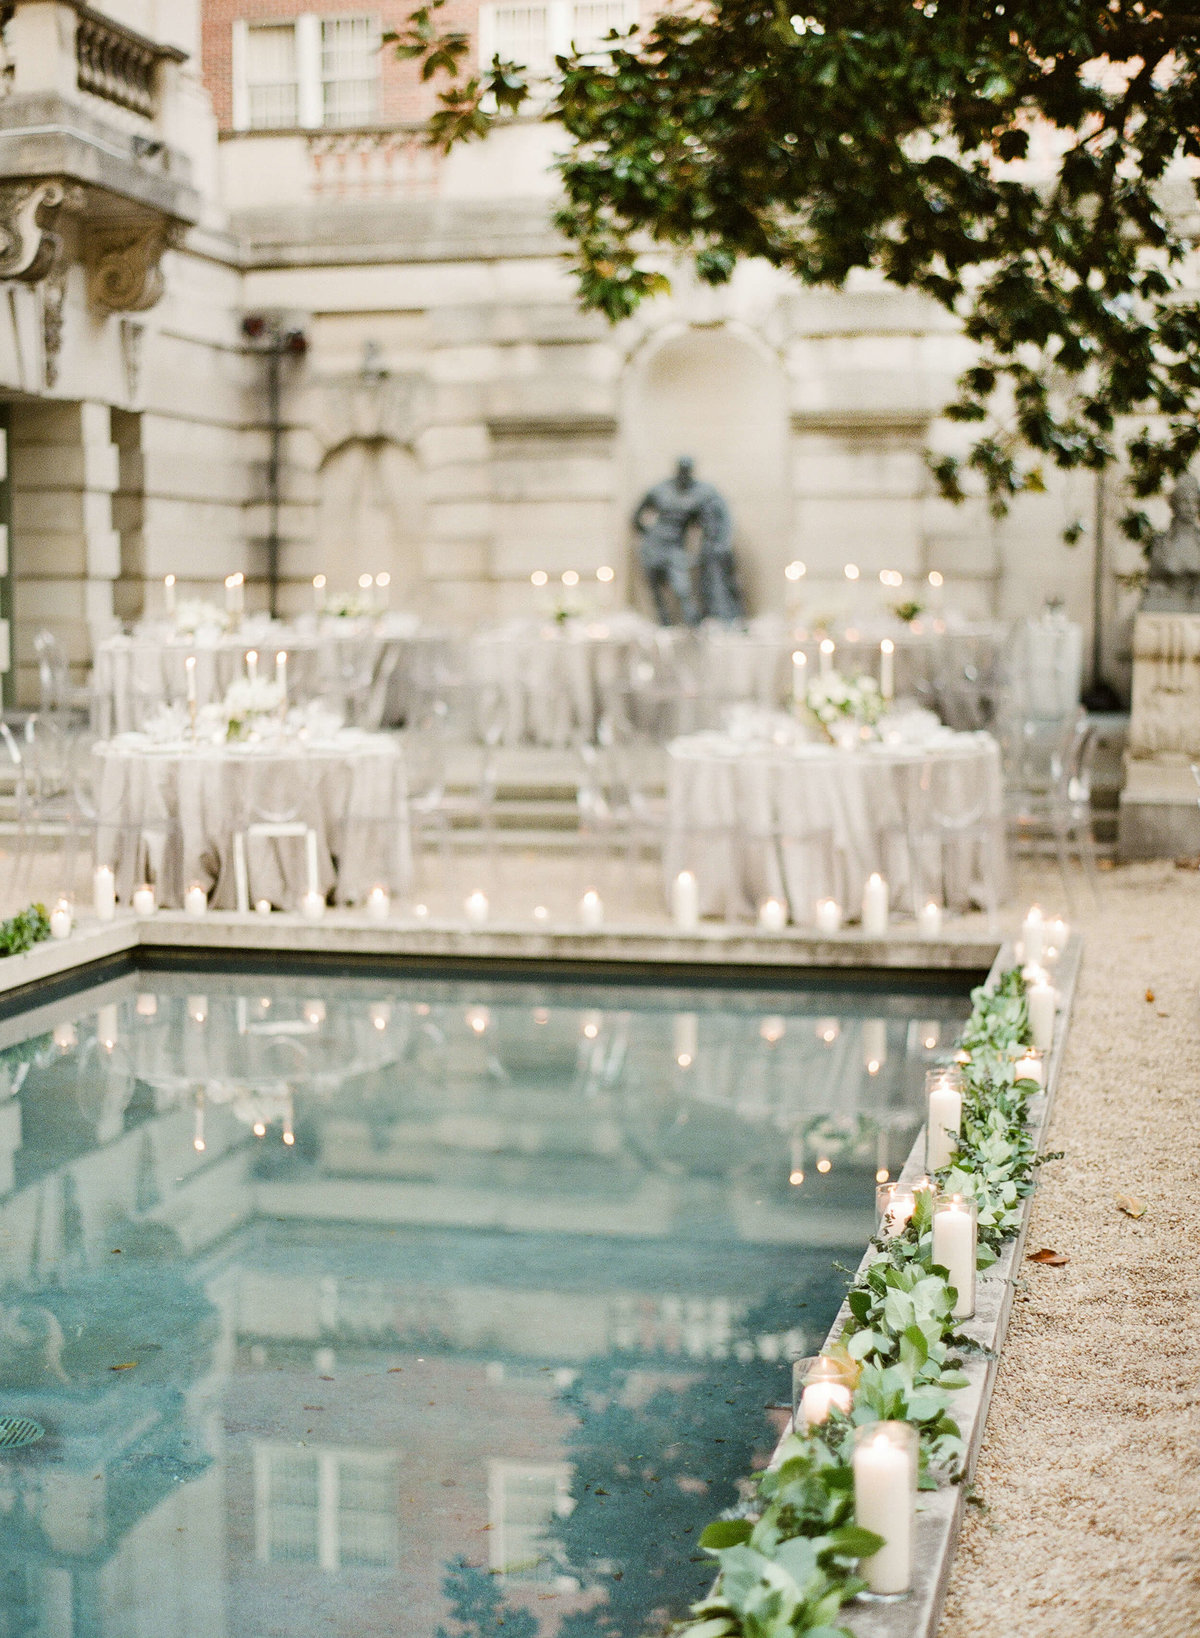 35-KTMerry-wedding-reception-outdoor-reflecting-pool